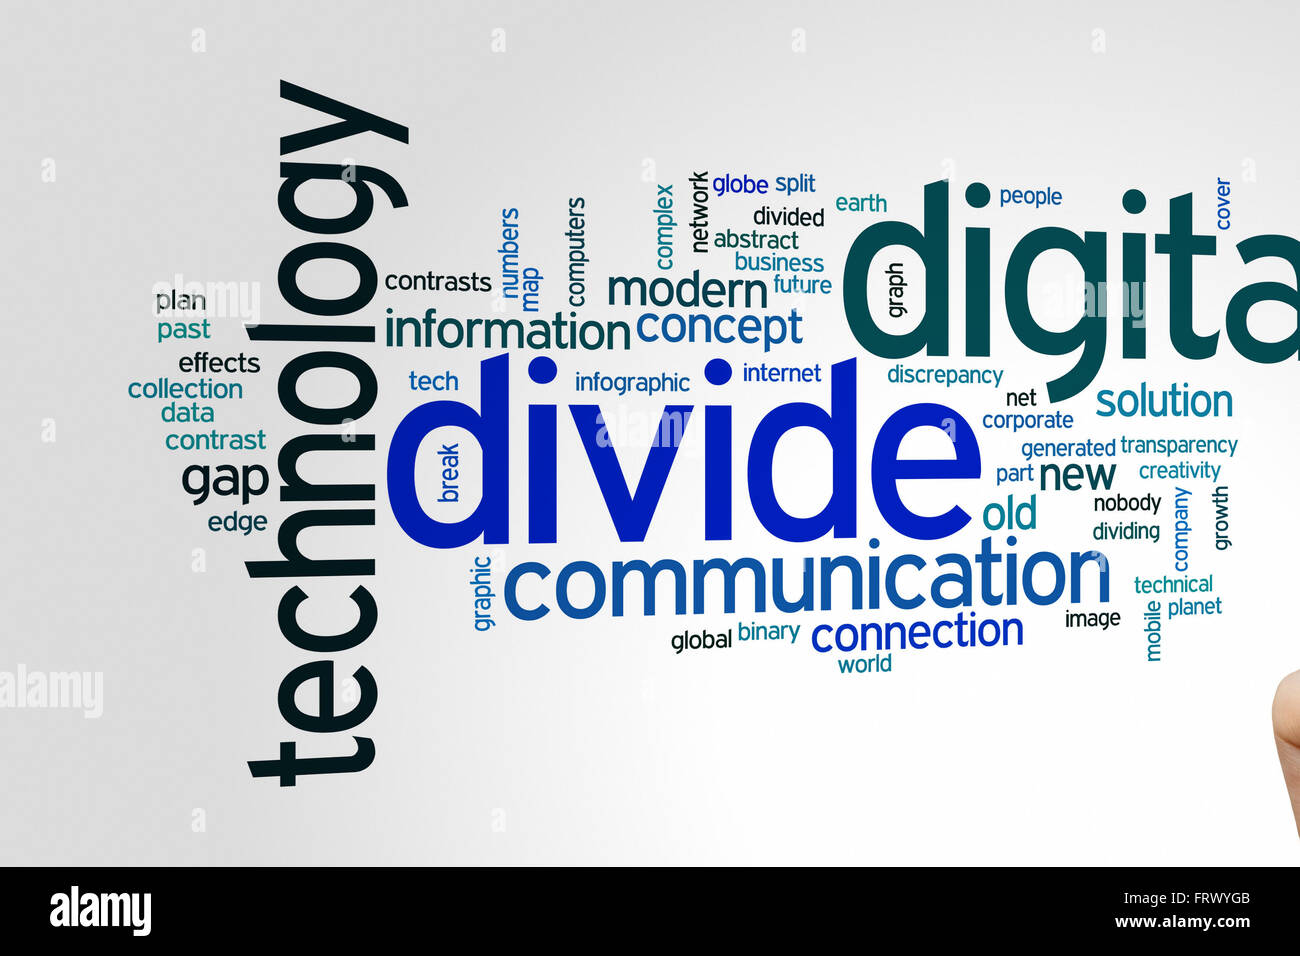 solutions to the global digital divide